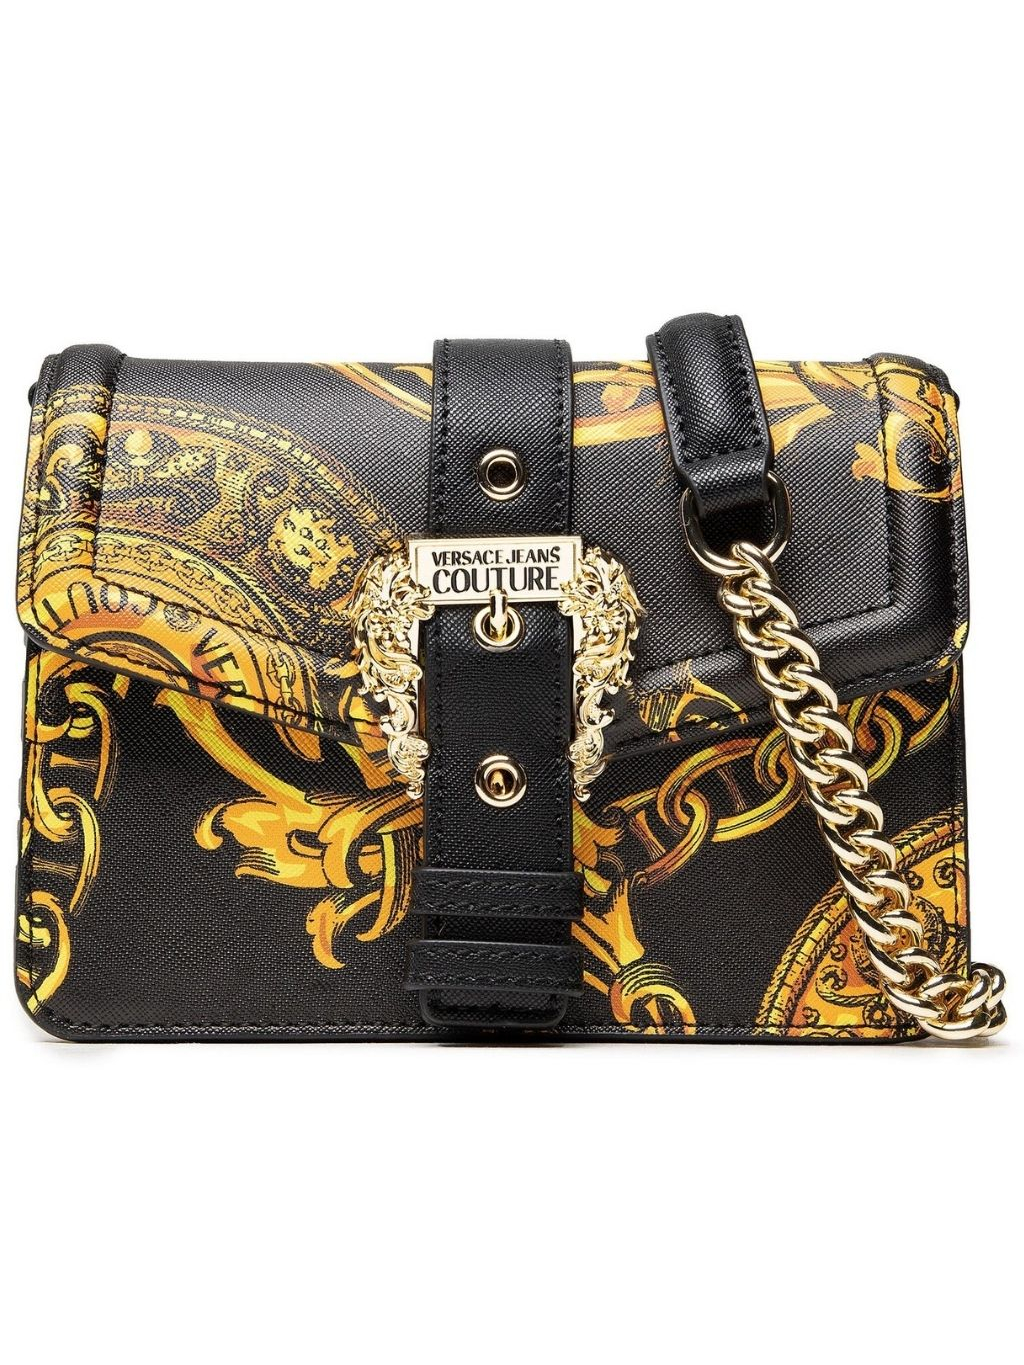 versace jeans couture gold crossbody kabelka (3)